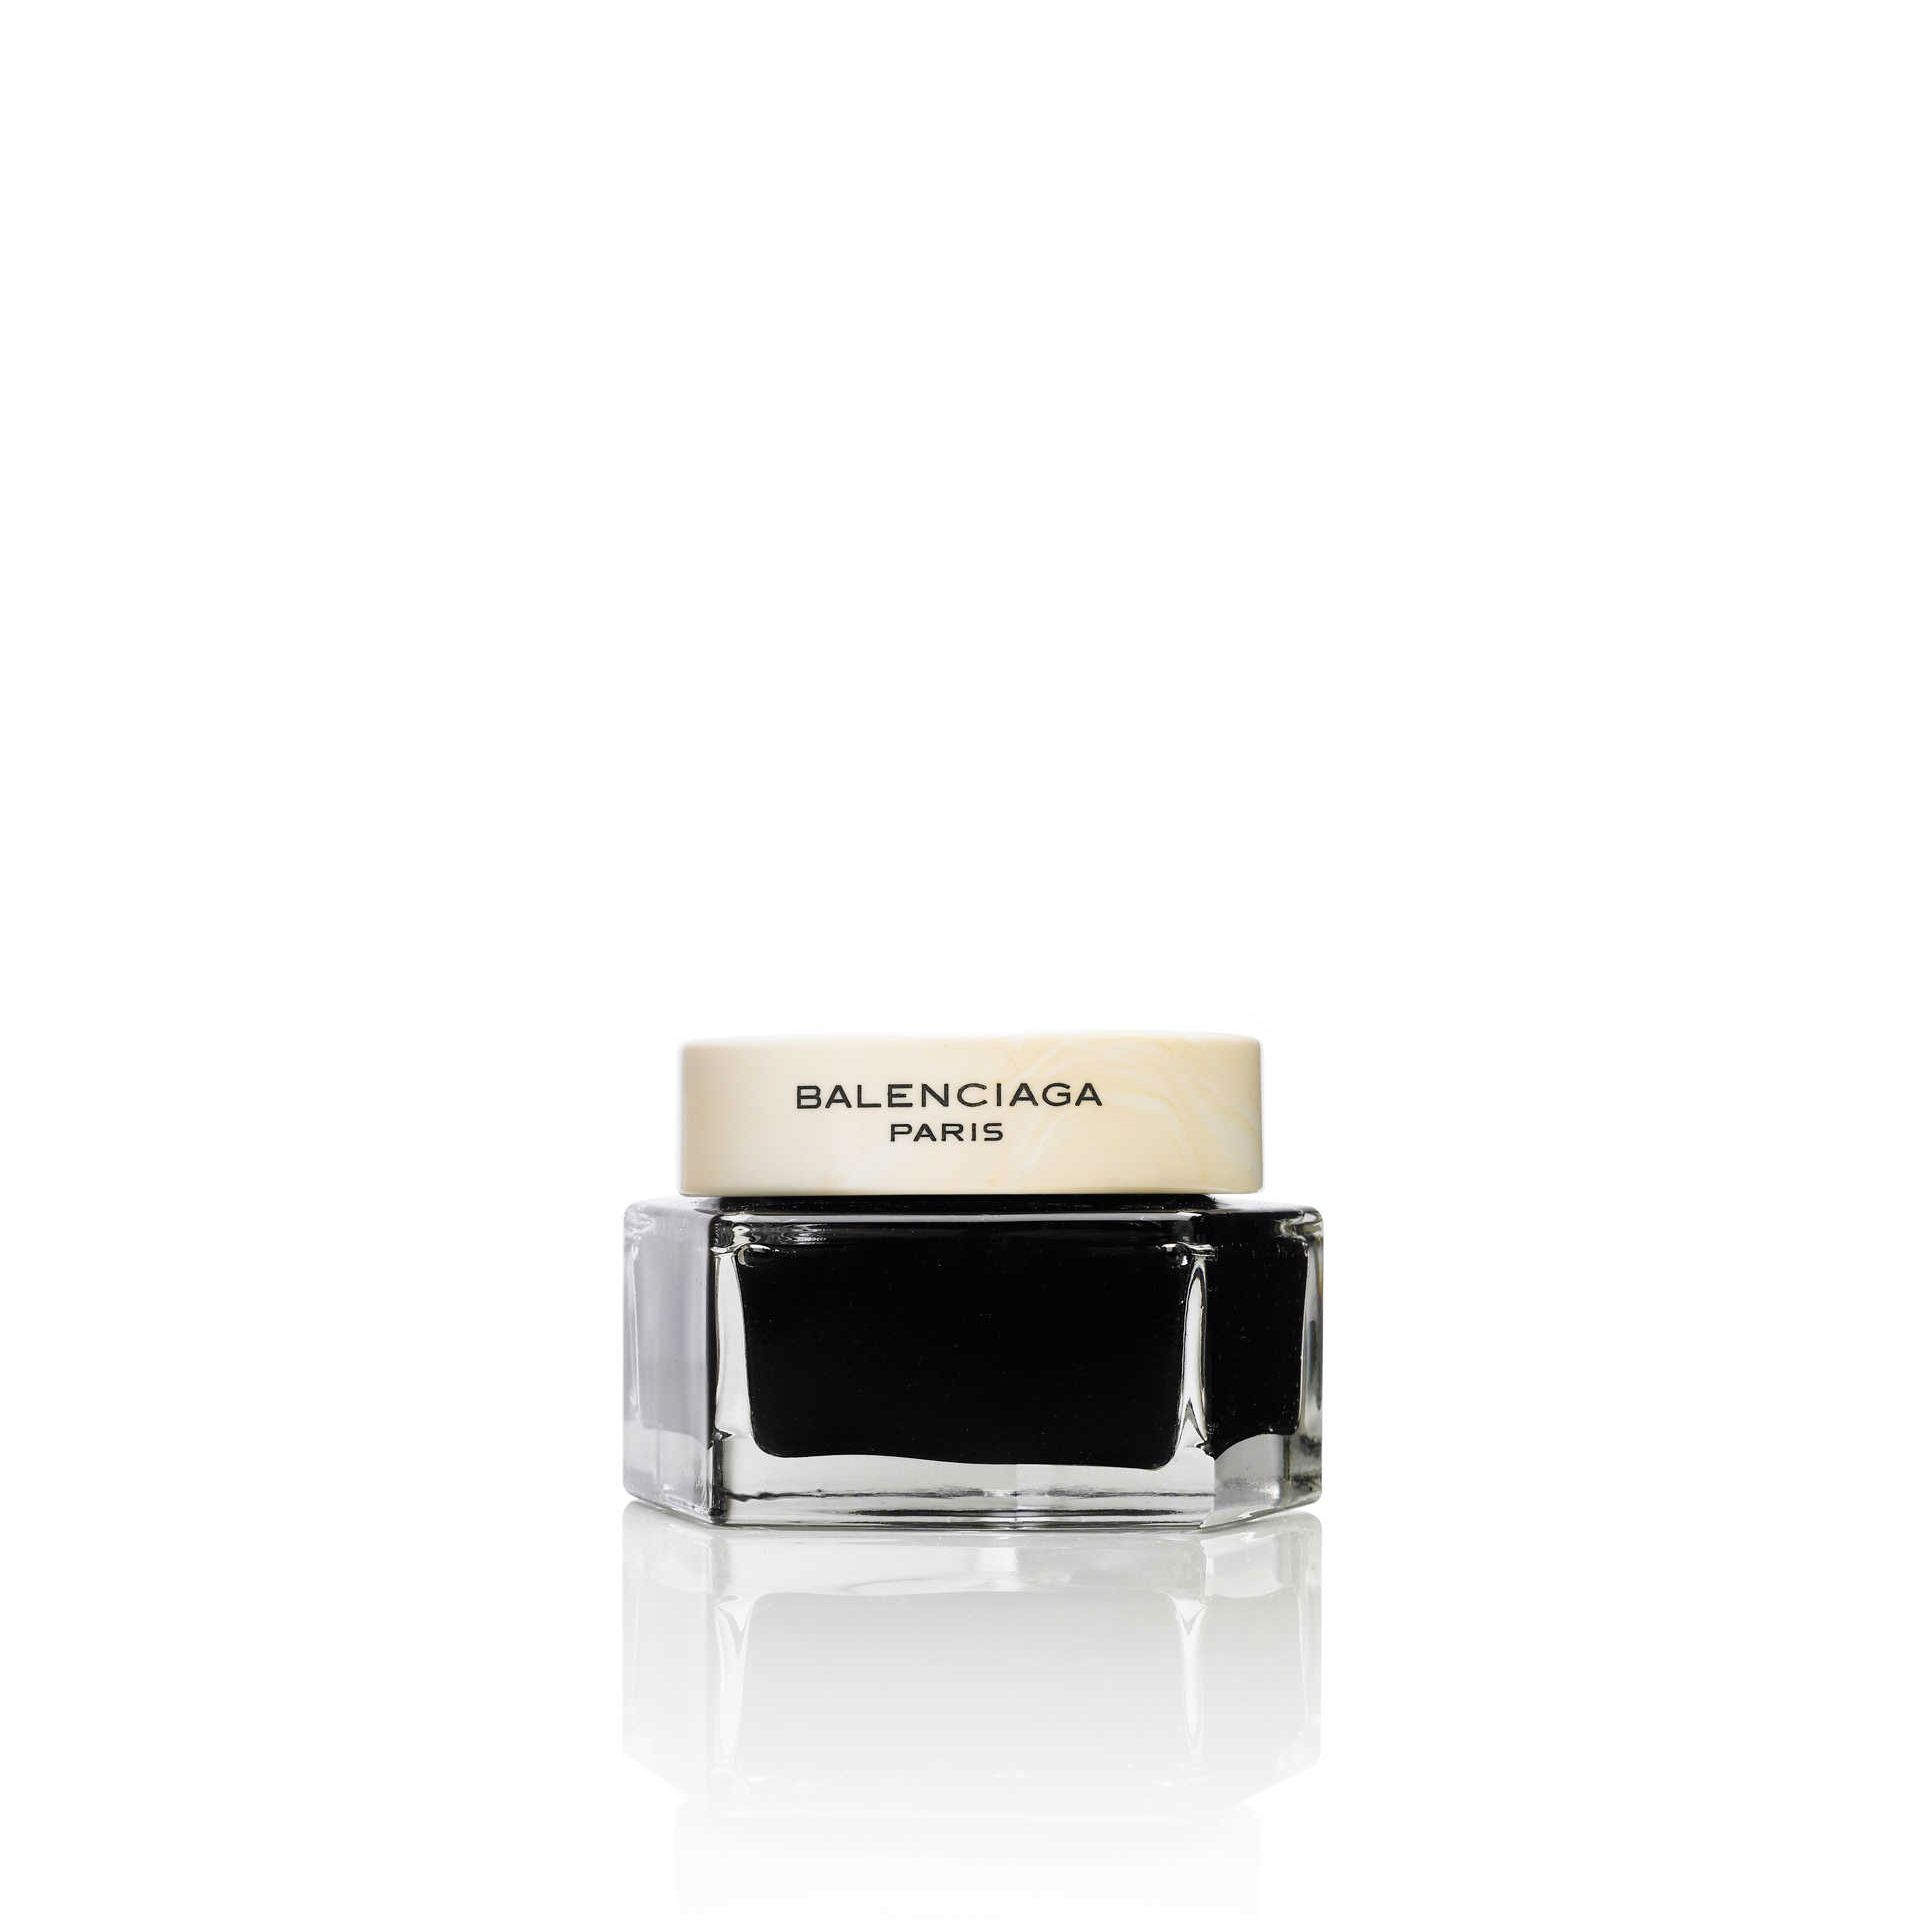 BALENCIAGA alenciaga Paris Body Scrub Fragrance D f